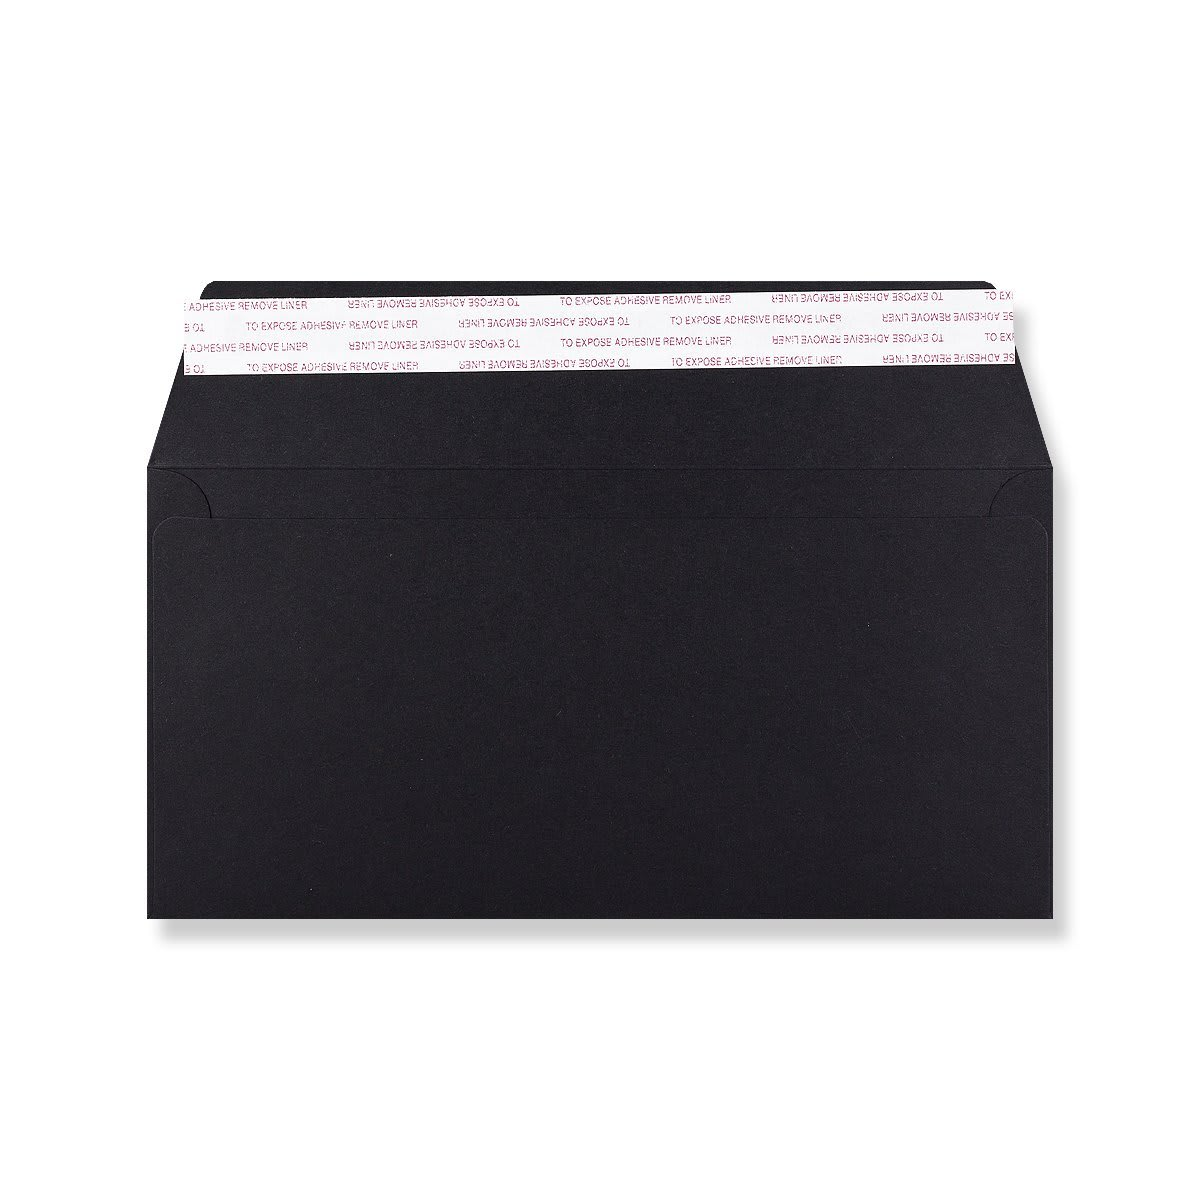 DL BLACK 180GSM PEEL AND SEAL ENVELOPES